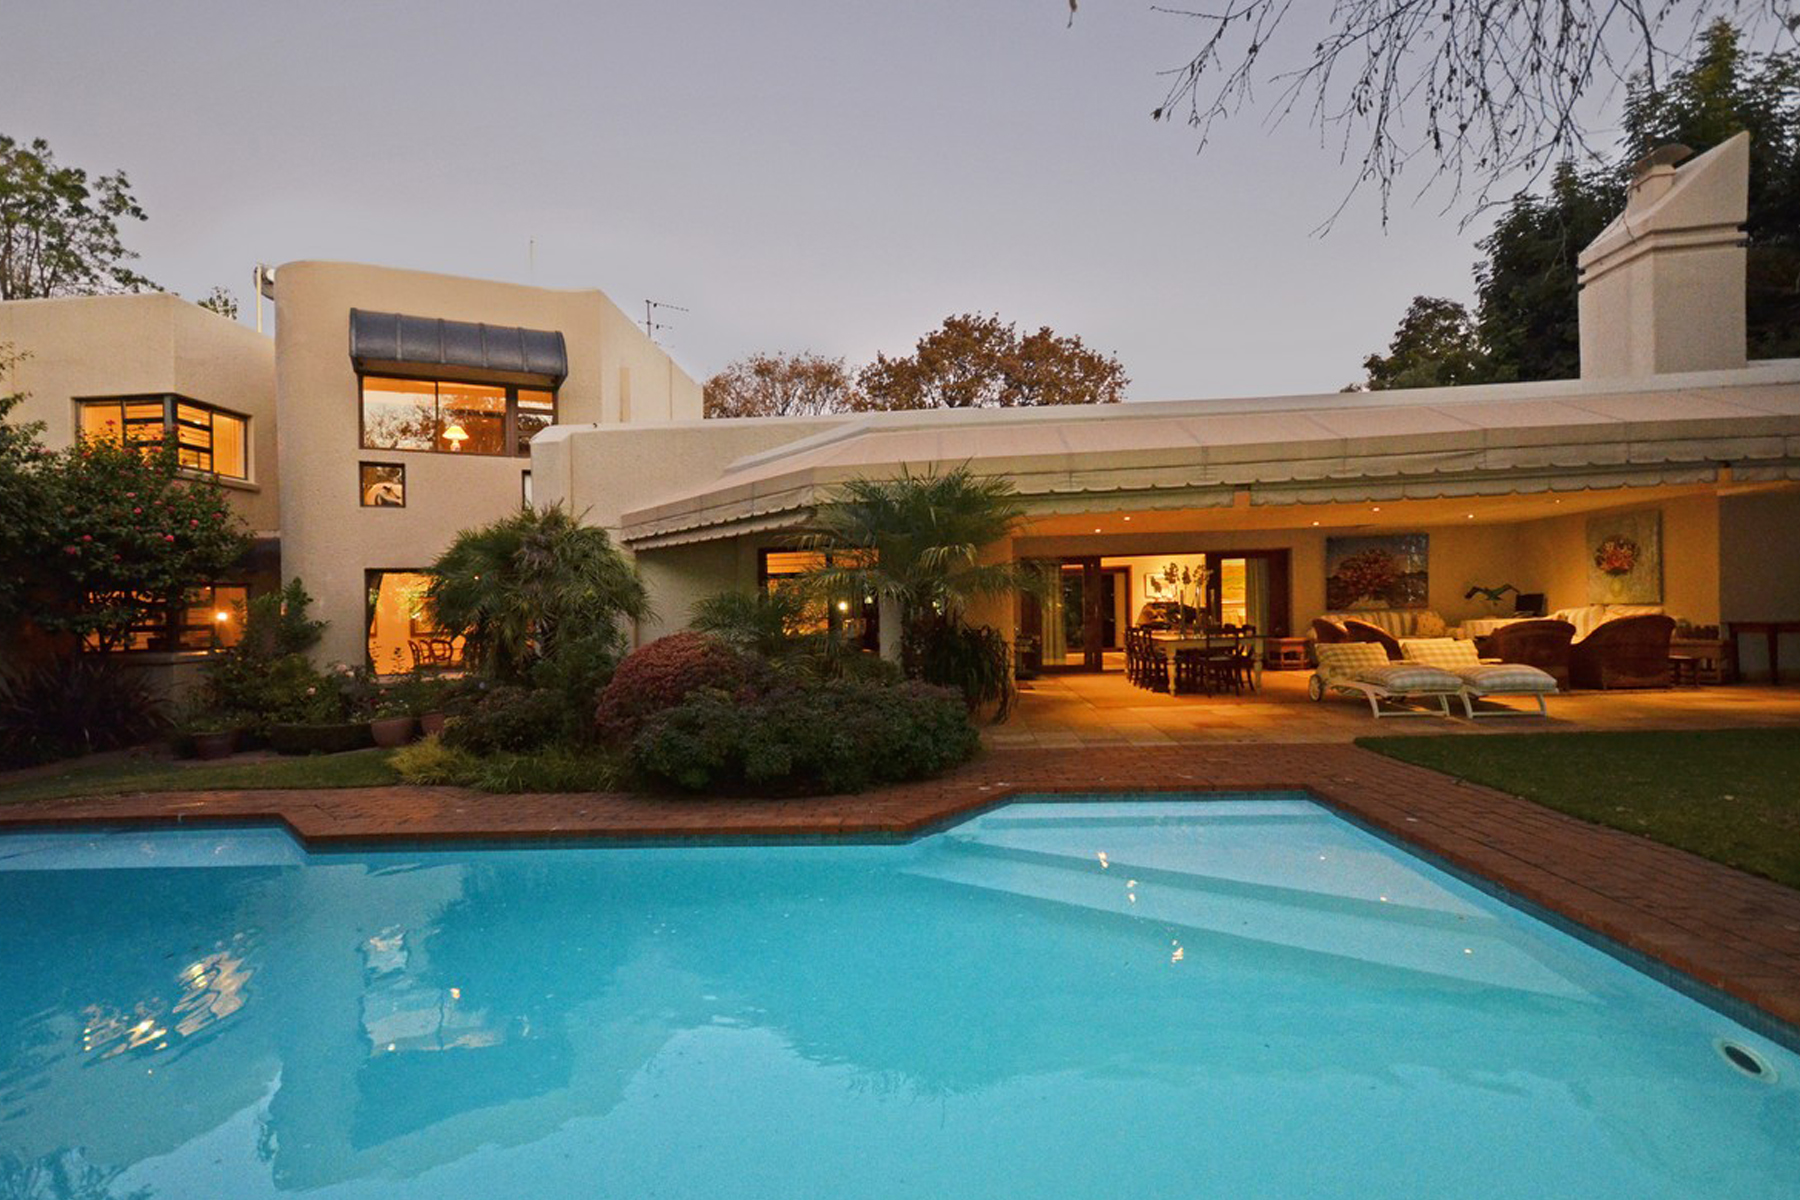 Single Family Home for Sale at Illovo Illovo, Johannesburg, Gauteng South Africa